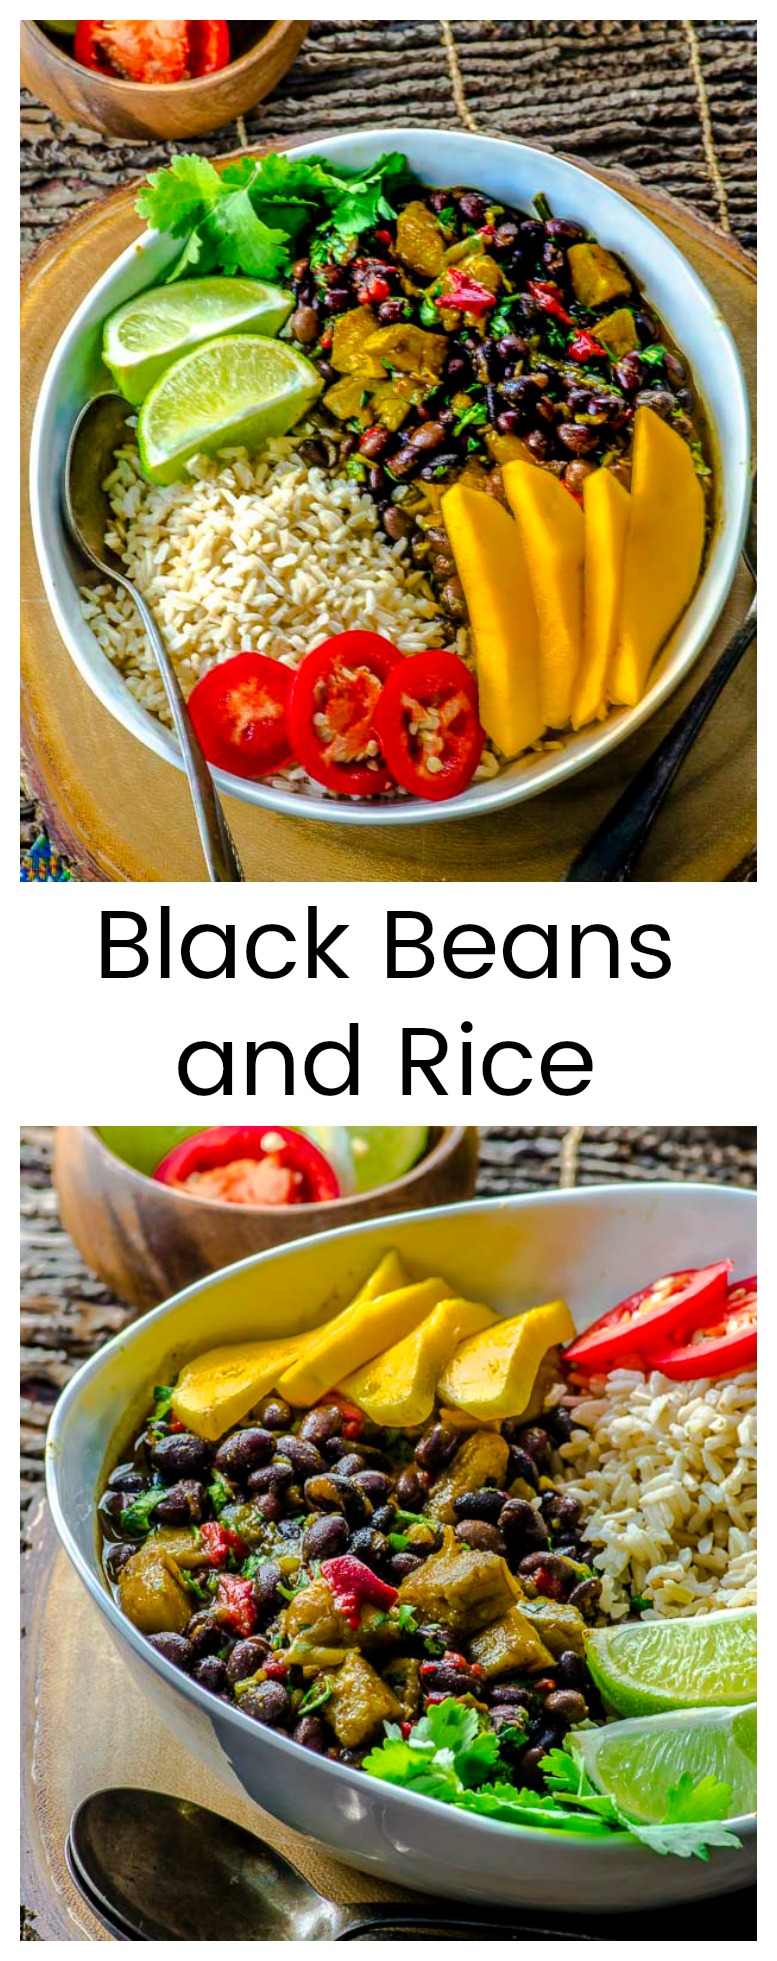 This big bowl of Black Beans and Rice with Plantains is a delicious, quick and easy dinner, that is gluten-free, full of fiber, and constitutes a complete protein for vegans and non-meat eaters.